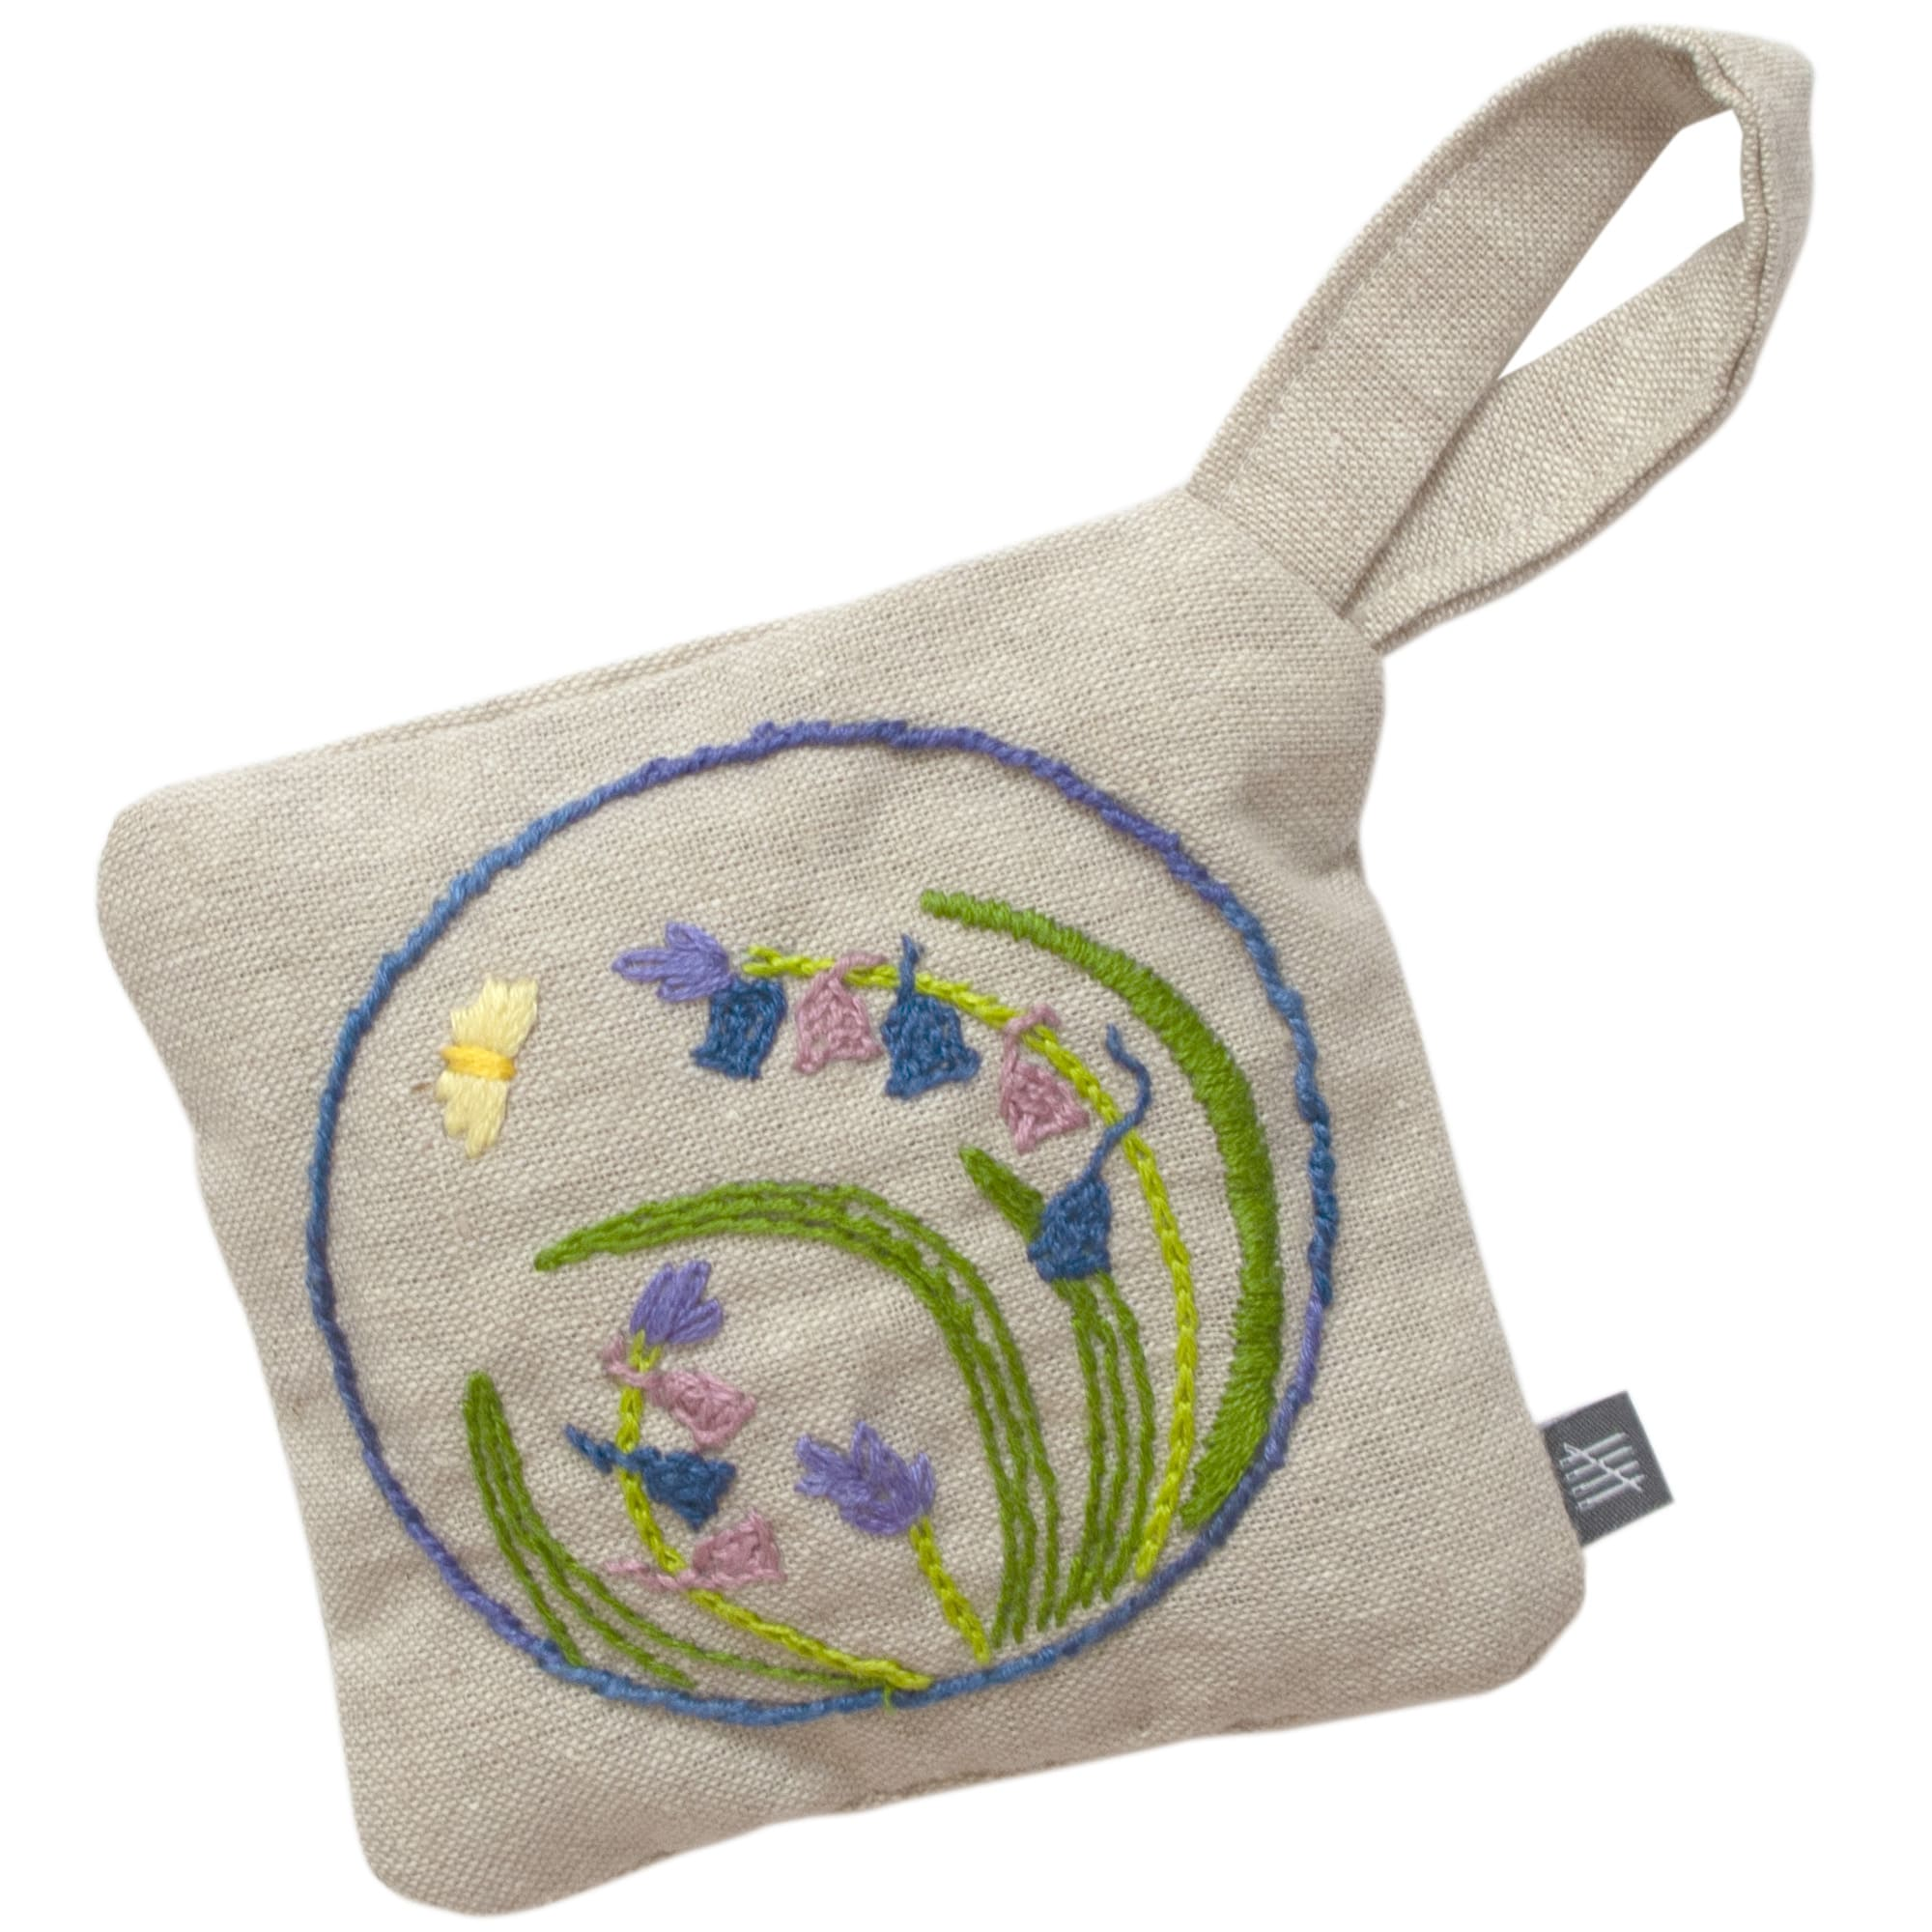 Plantlife Hand Embroidered Lavender Bag Floral Flower Butterfly Fine Cell Work